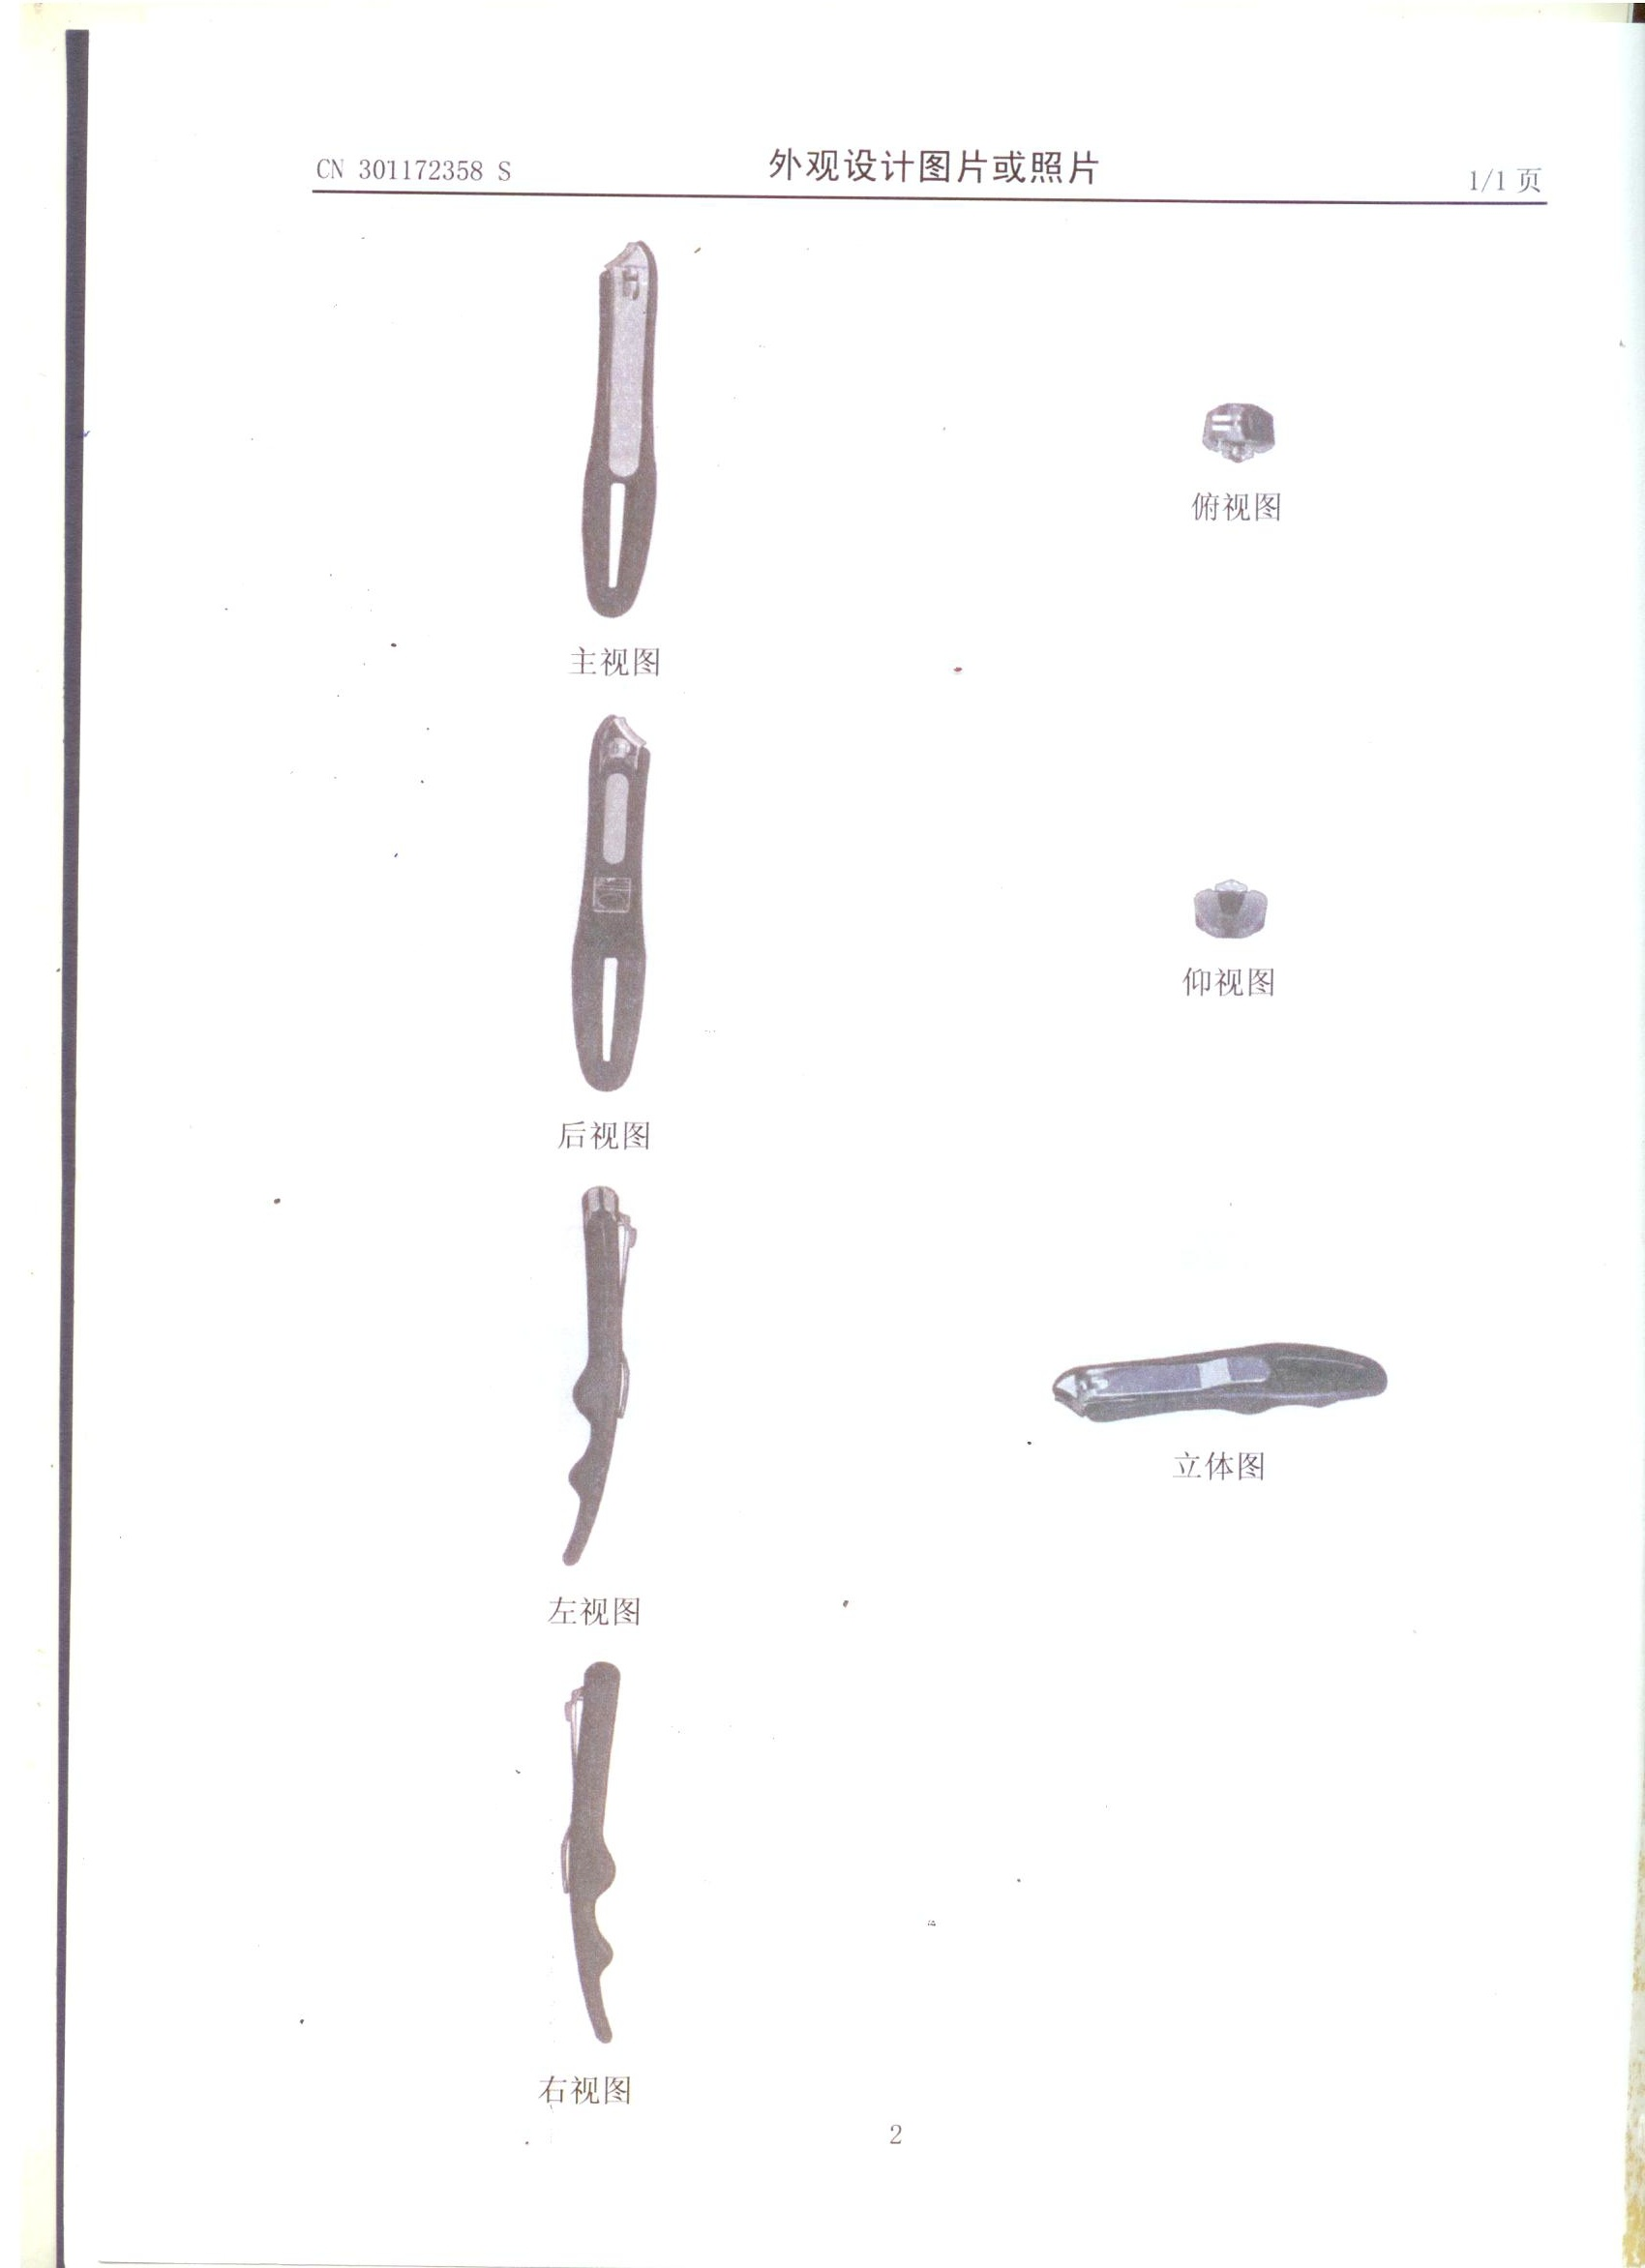 nail clipper products patent